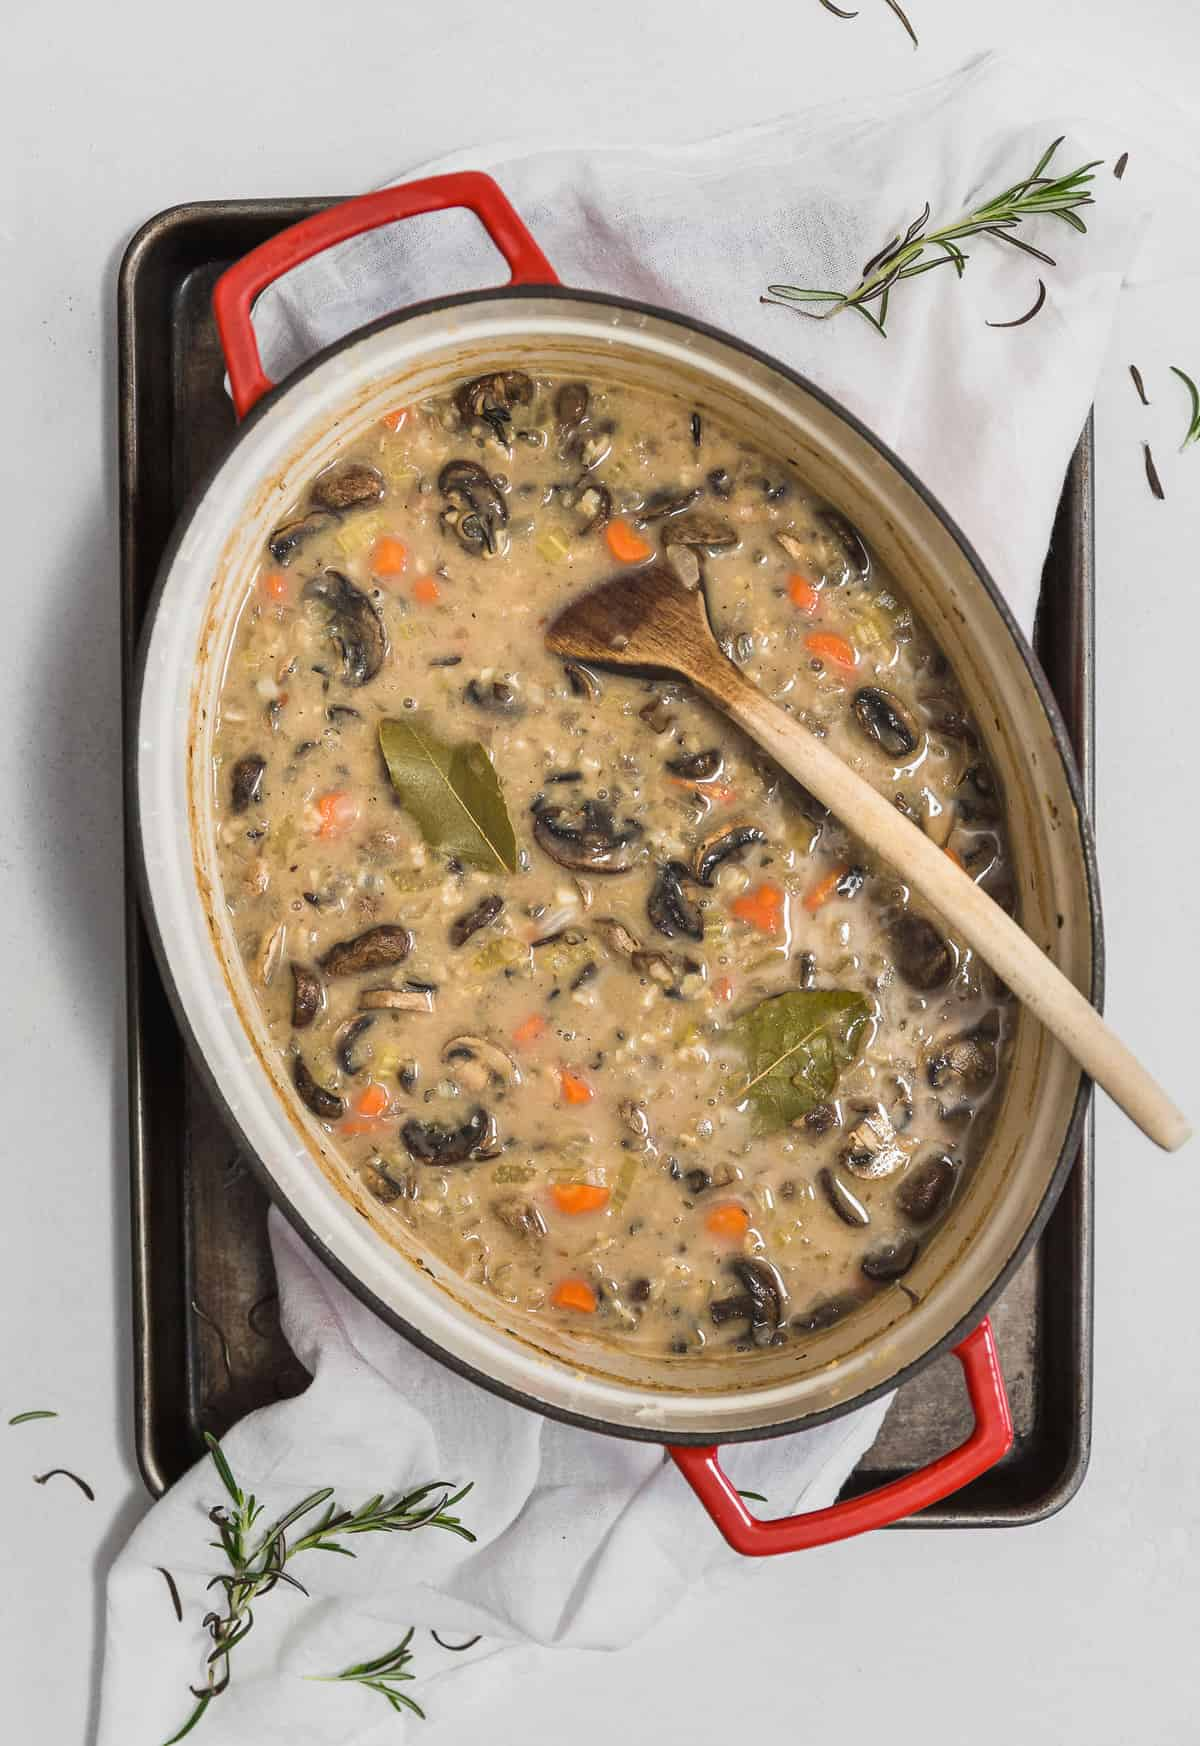 Creamy Mushroom and Wild Rice Soup, plant based, vegan, vegetarian, whole food plant based, gluten free, recipe, wfpb, healthy, healthy vegan, oil free, no refined sugar, no oil, refined sugar free, dairy free, dinner party, entertaining, soup